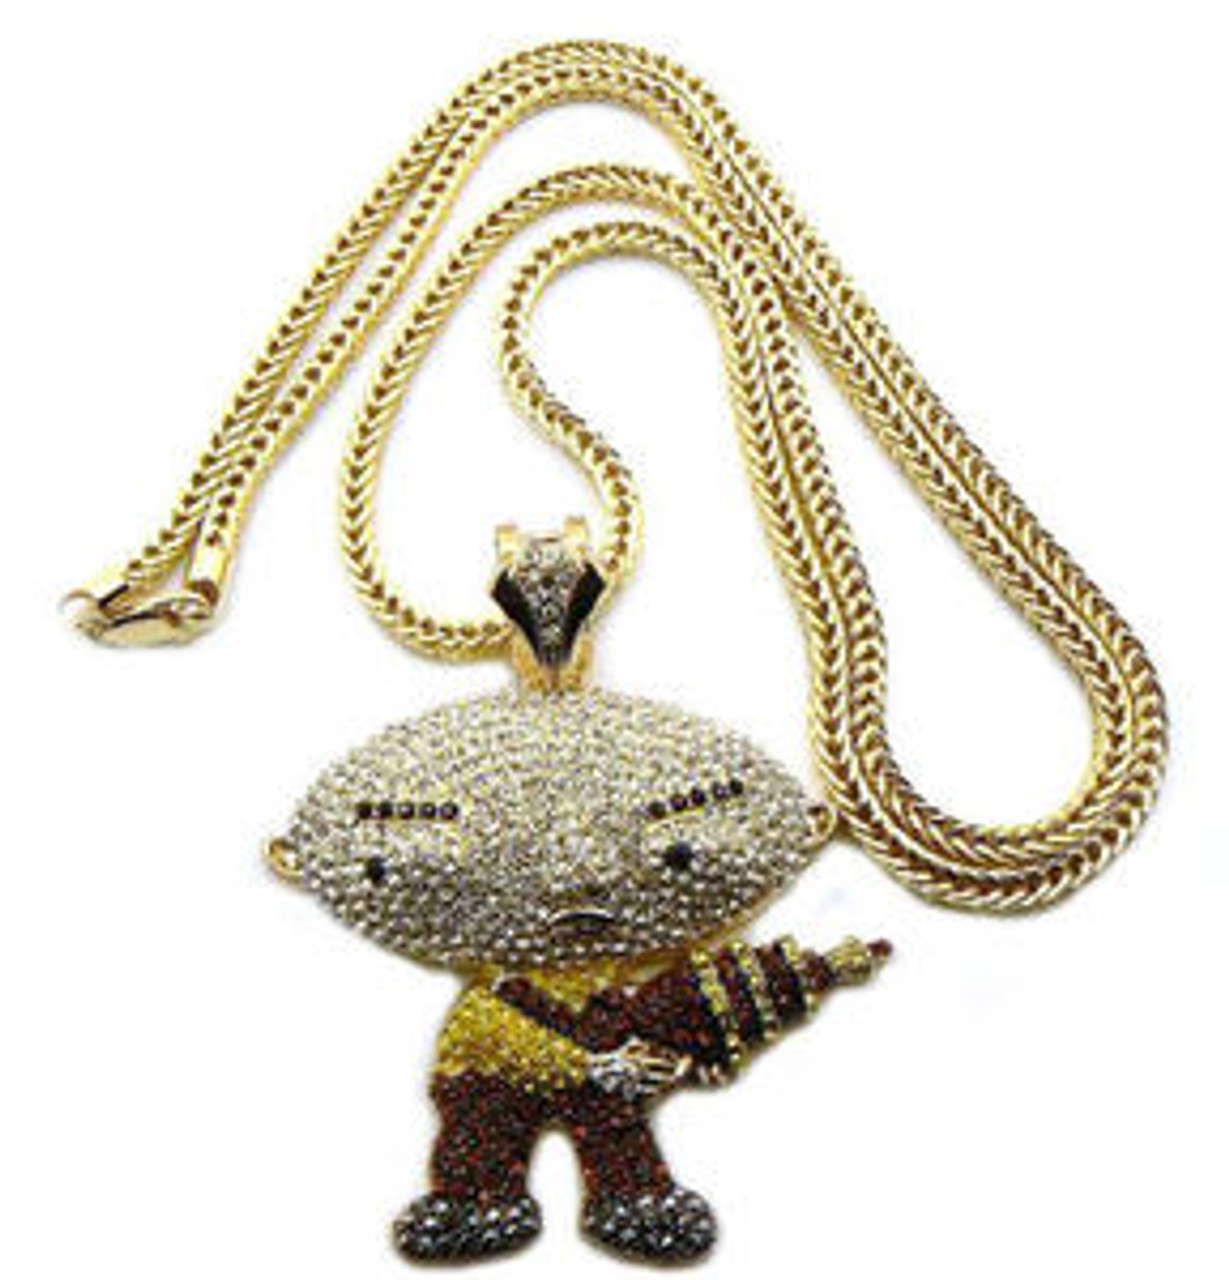 Iced out stewie pendant franco chain wgun 36 chain the iced out stewie pendant franco chain wgun 36 chain aloadofball Choice Image